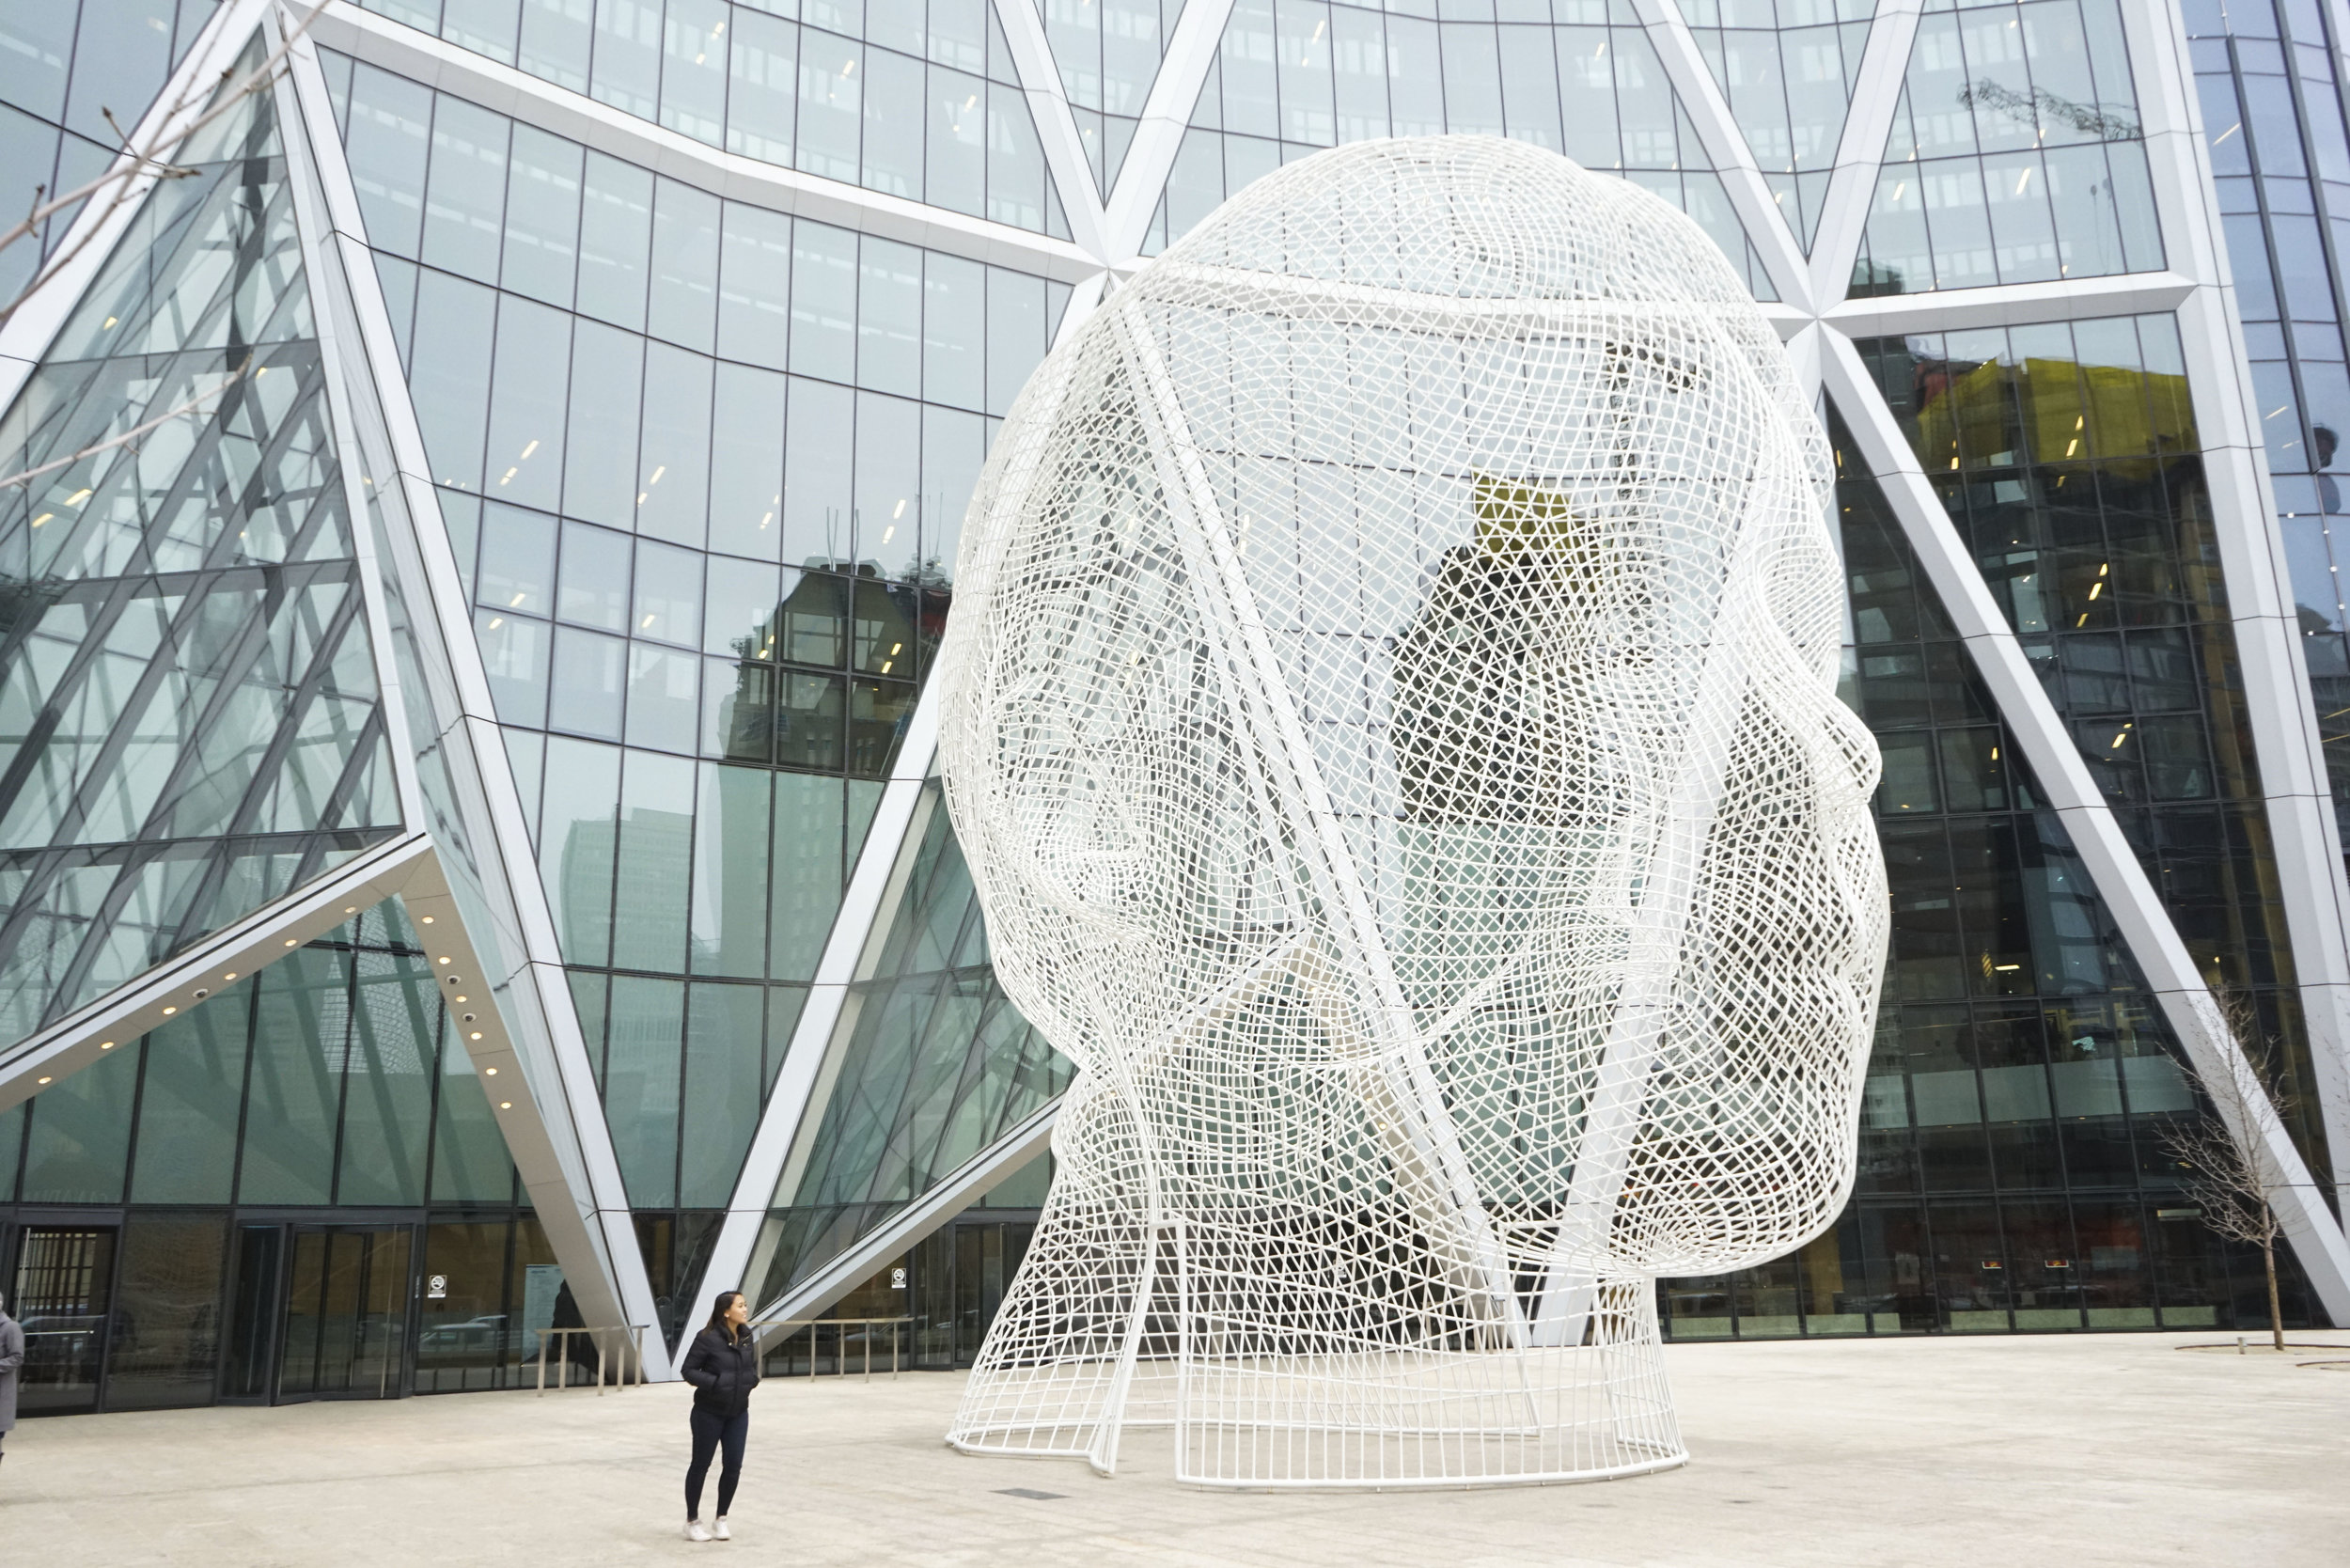 Top 3 things to See in Calgary, Canada